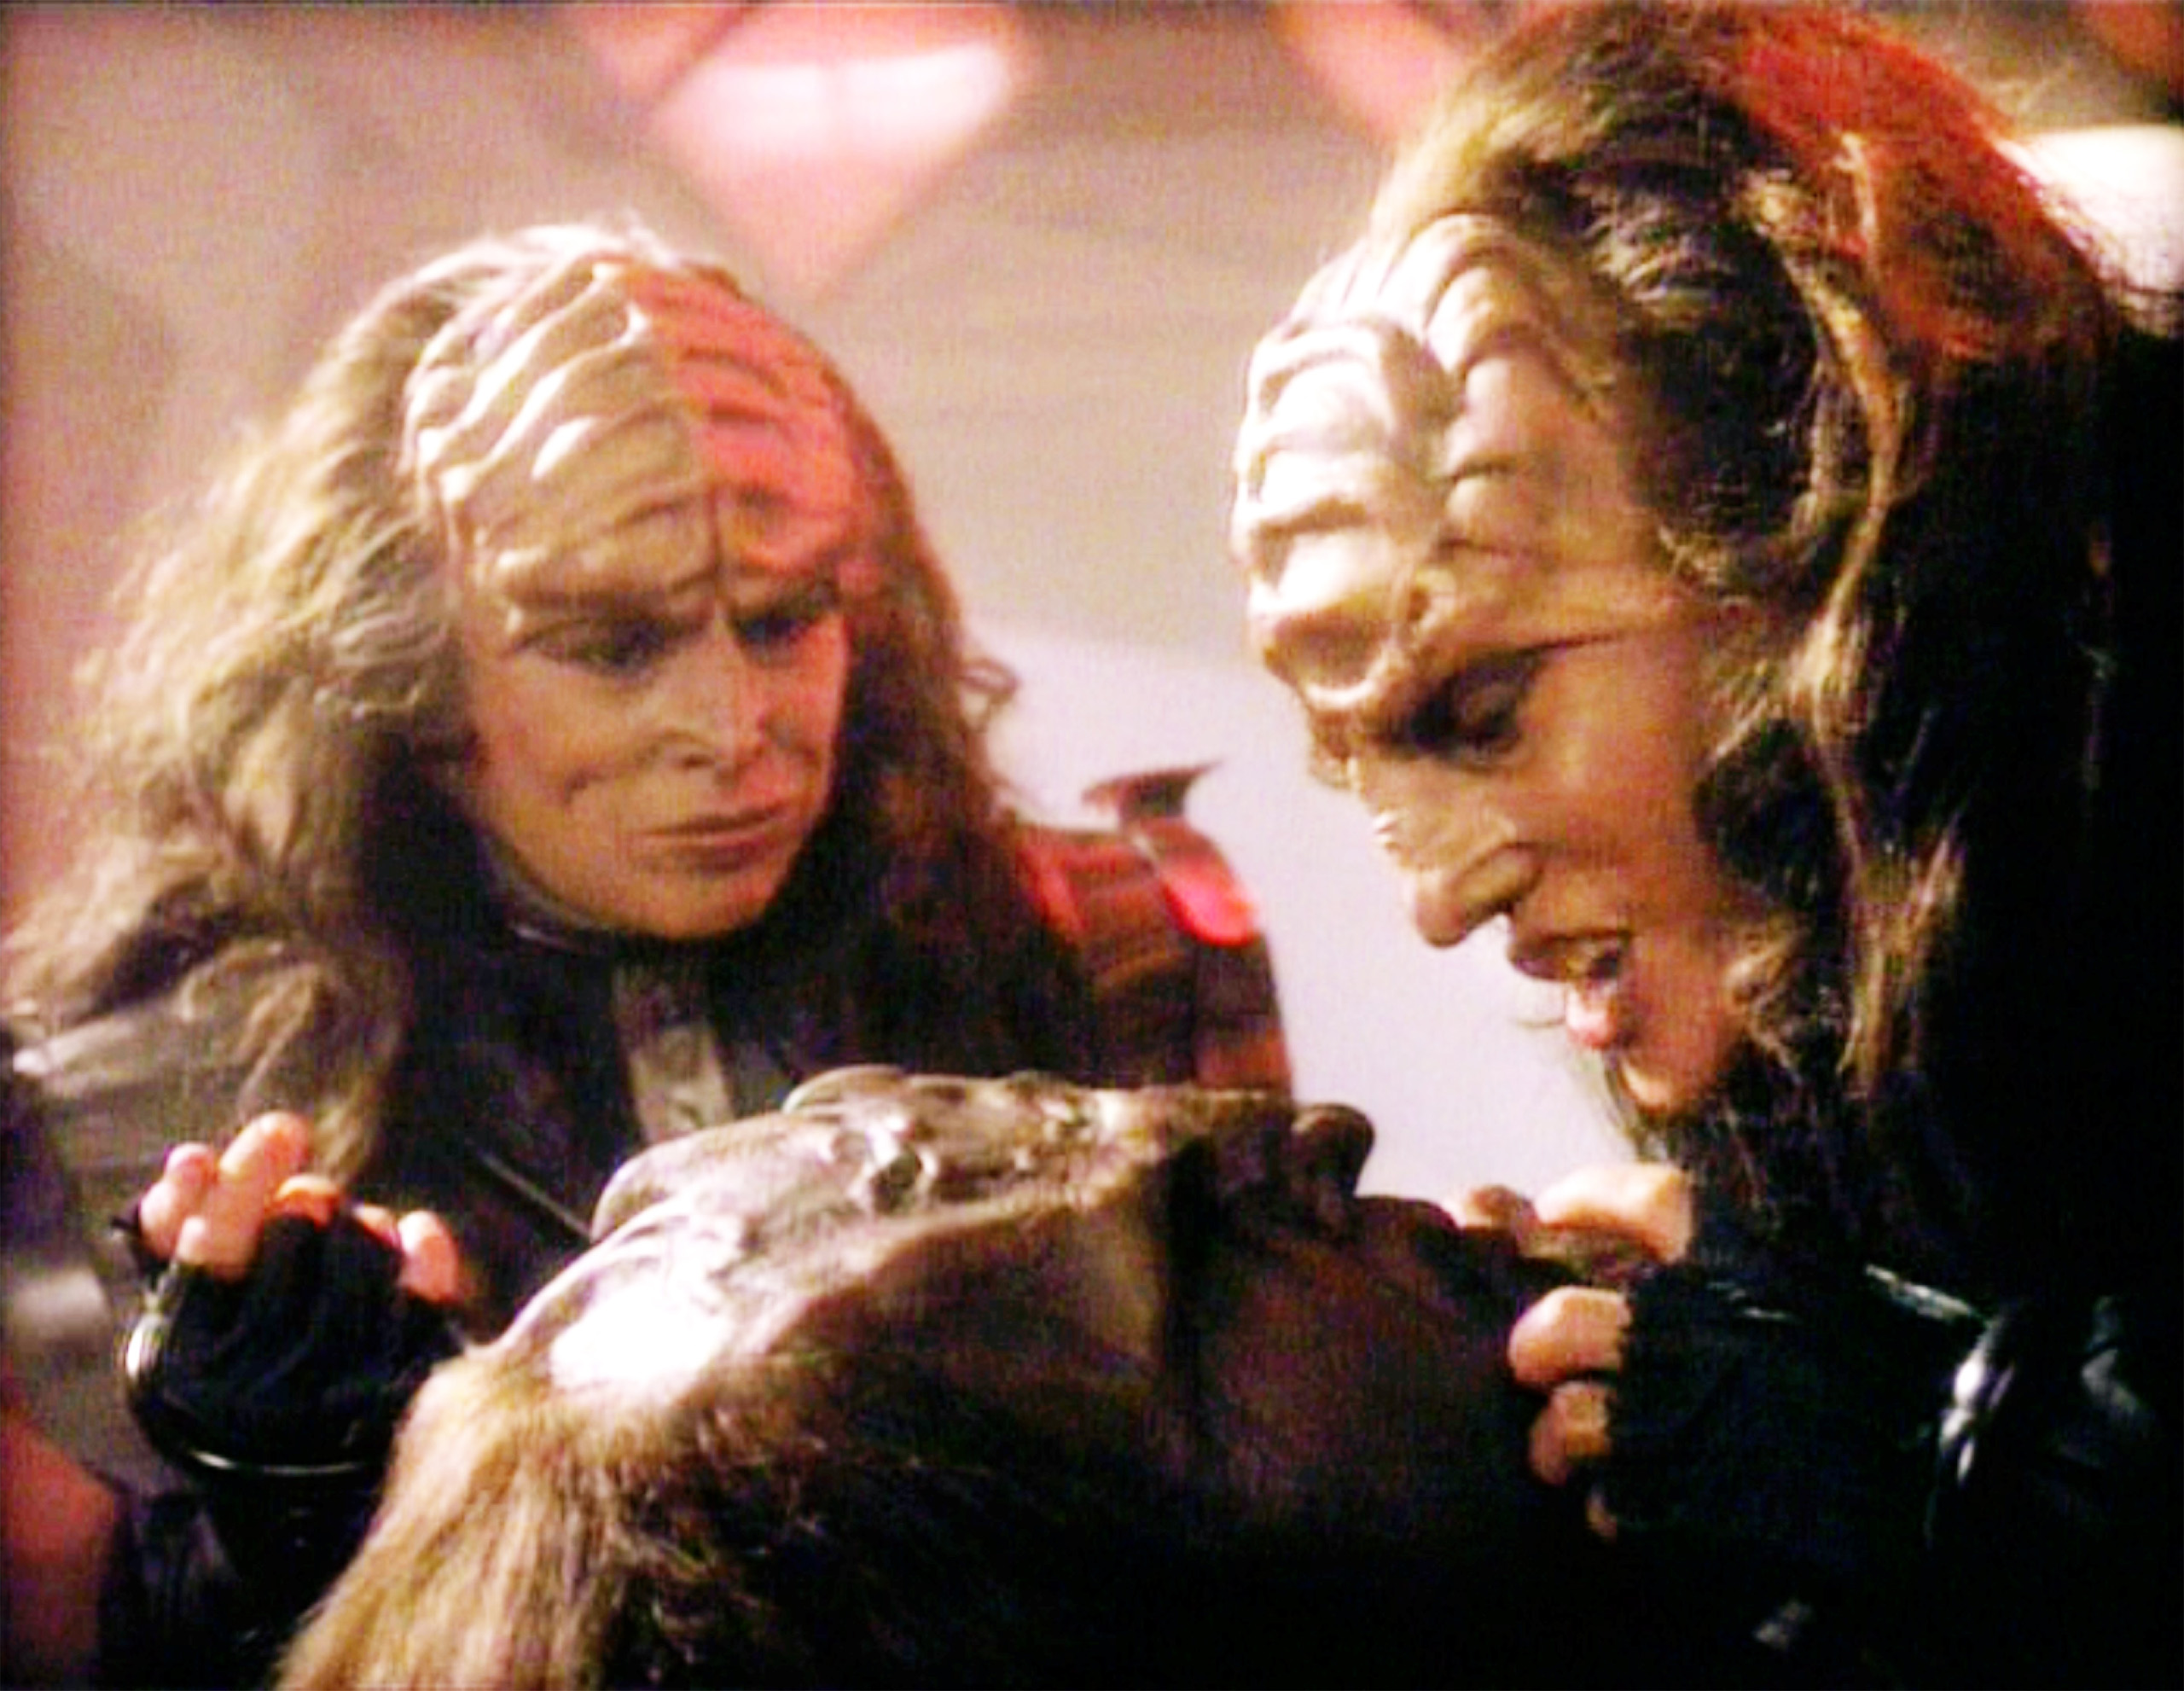 Star Trek: The Next Generation episode, 'Redemption II,' featuring (from left) Barbara March as Lursa and Gwynyth Walsh as B'Etor (the Duras sisters, Klingon). B'Etor faces Worf (played by Michael Dorn). Episode originally broadcast on September 21, 1991.